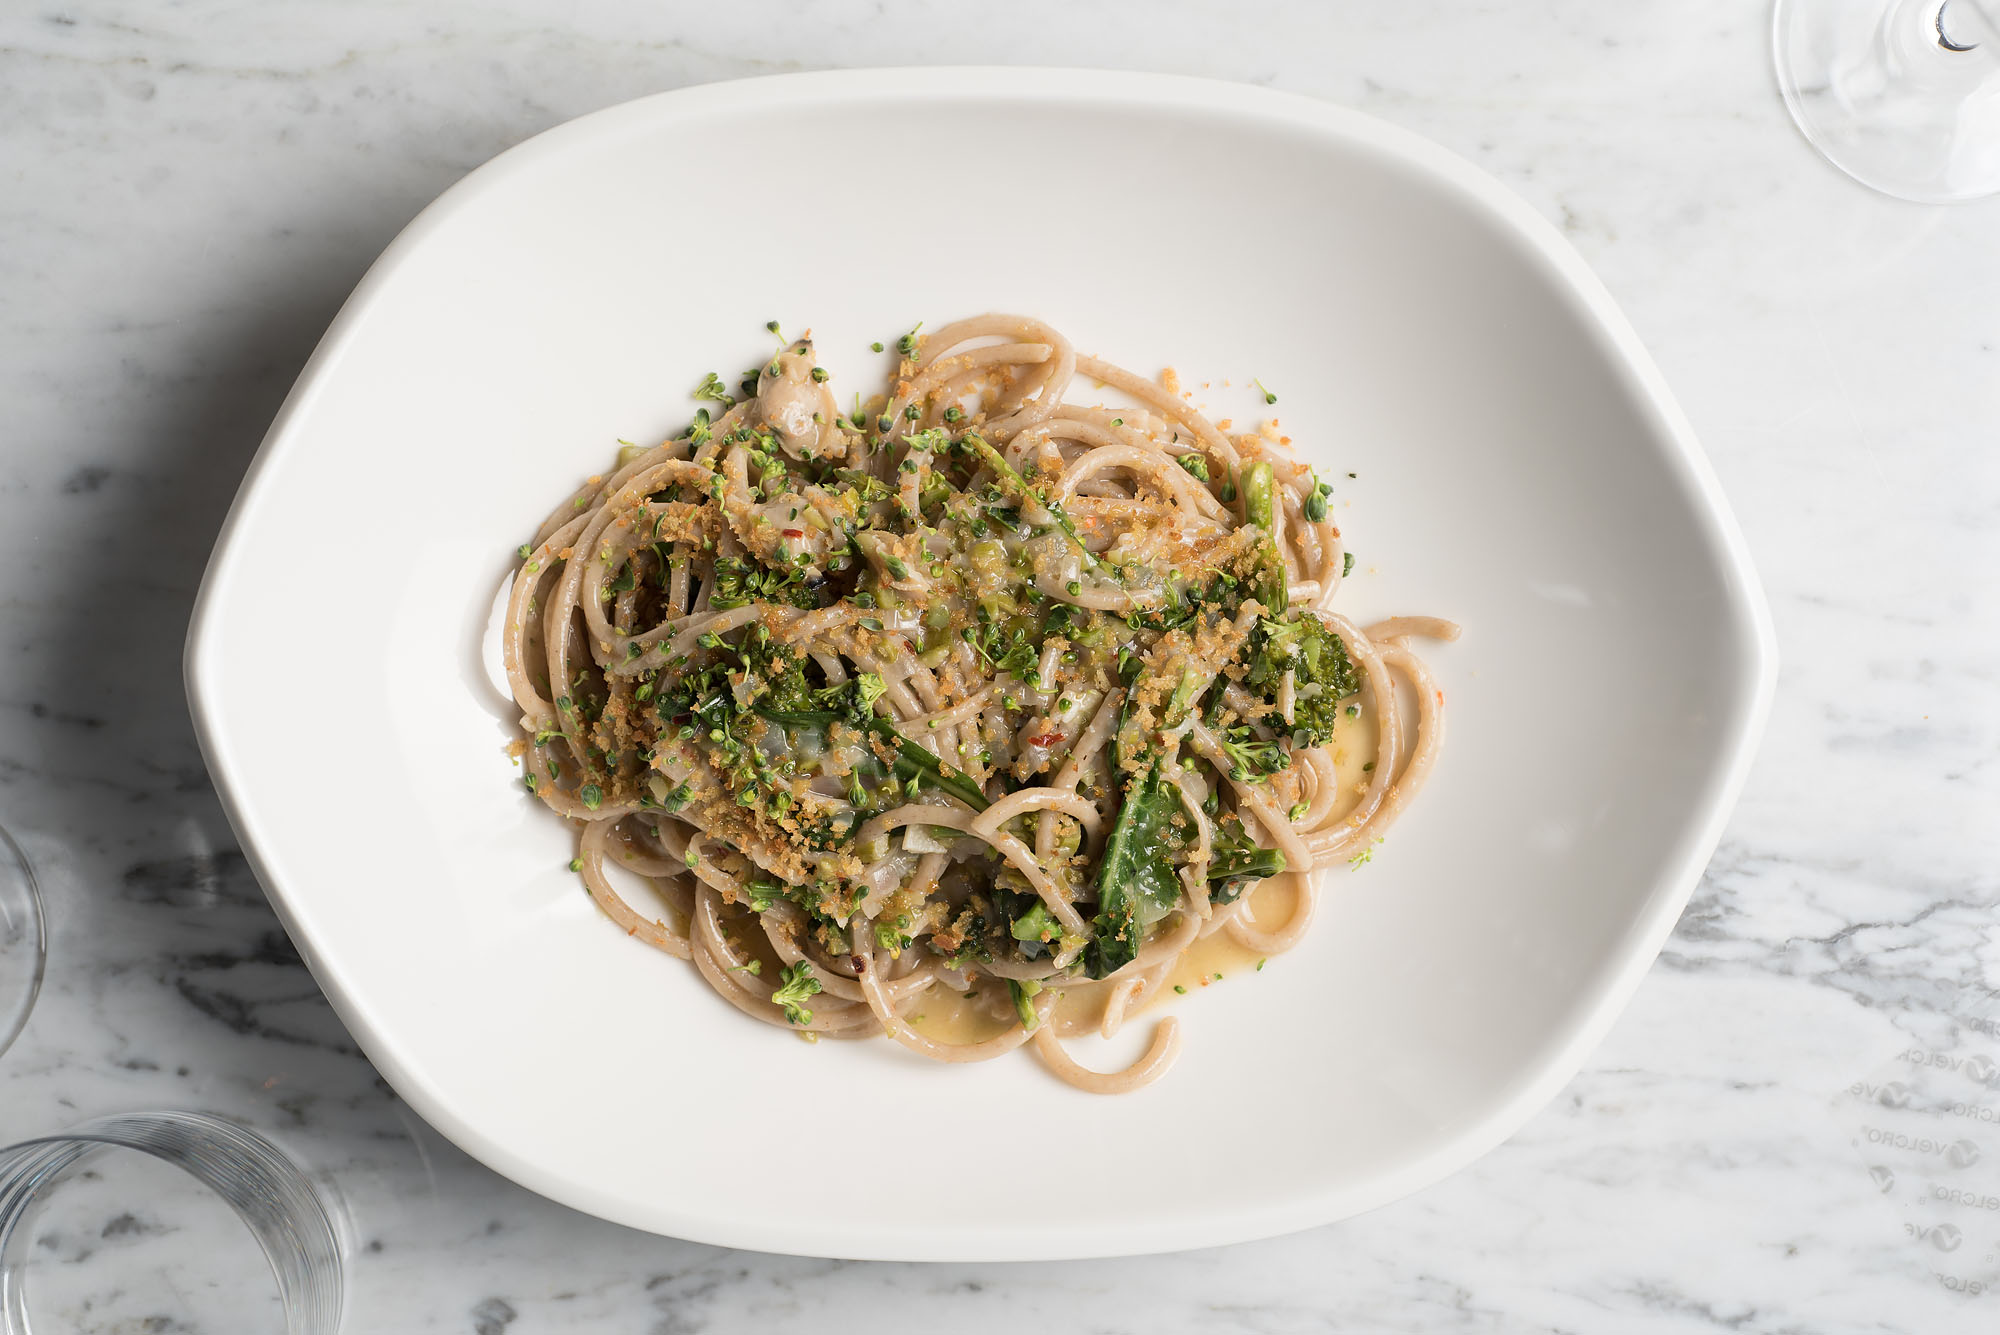 A plate of pasta with greens on a marble table at Cal Mare.